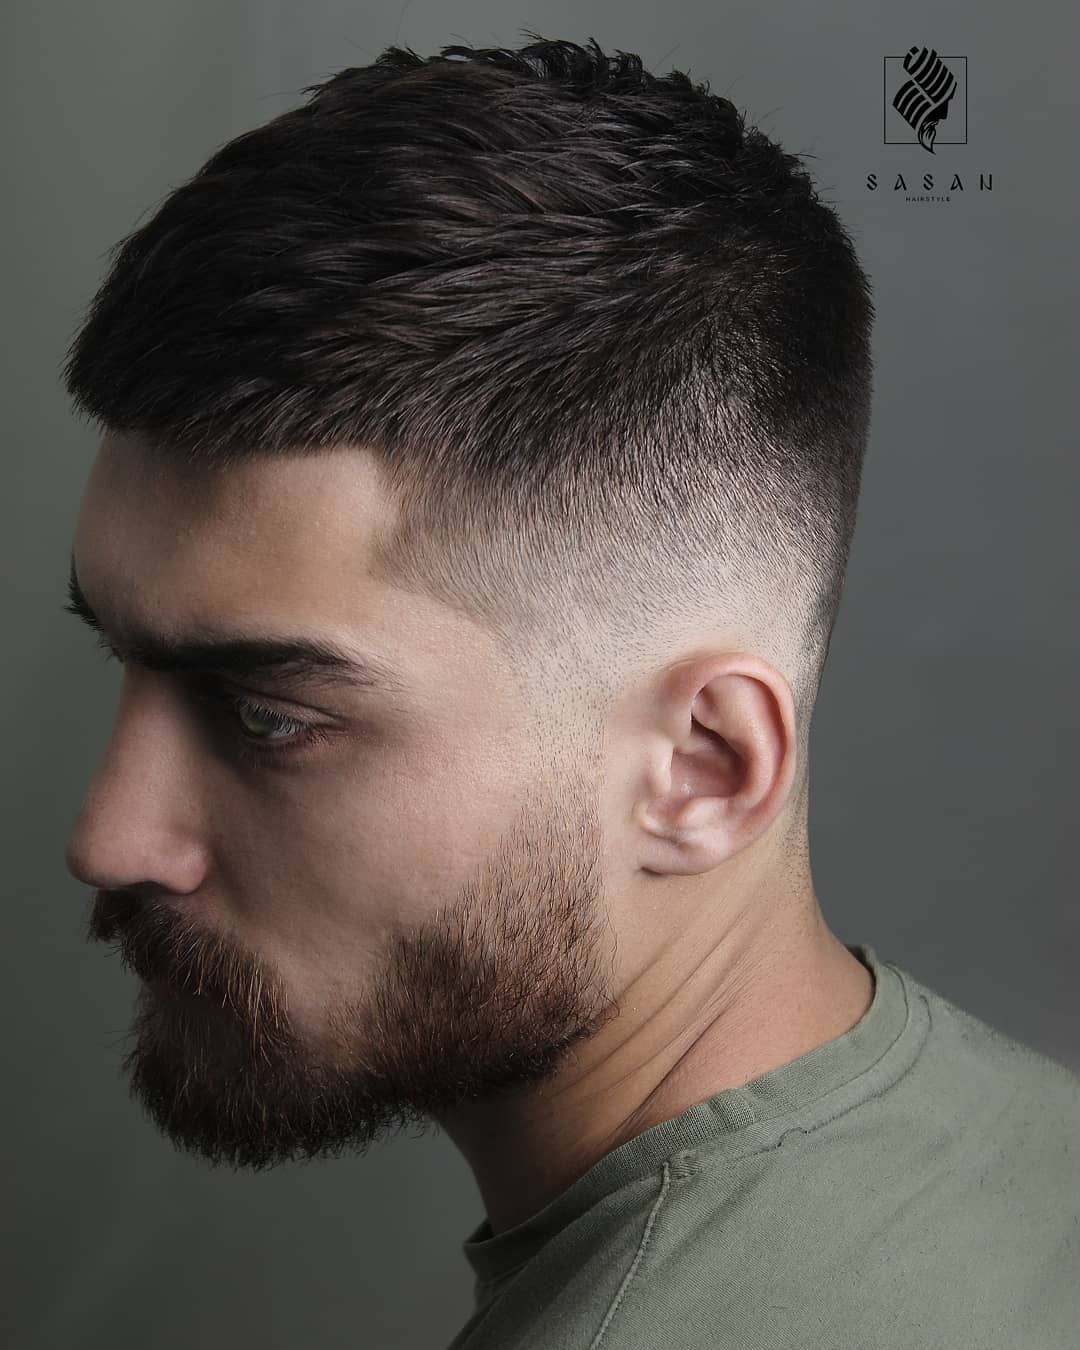 20 Cool Haircuts For Men 2020 Styles Mens Haircuts Short Young Men Haircuts Men Haircut Styles